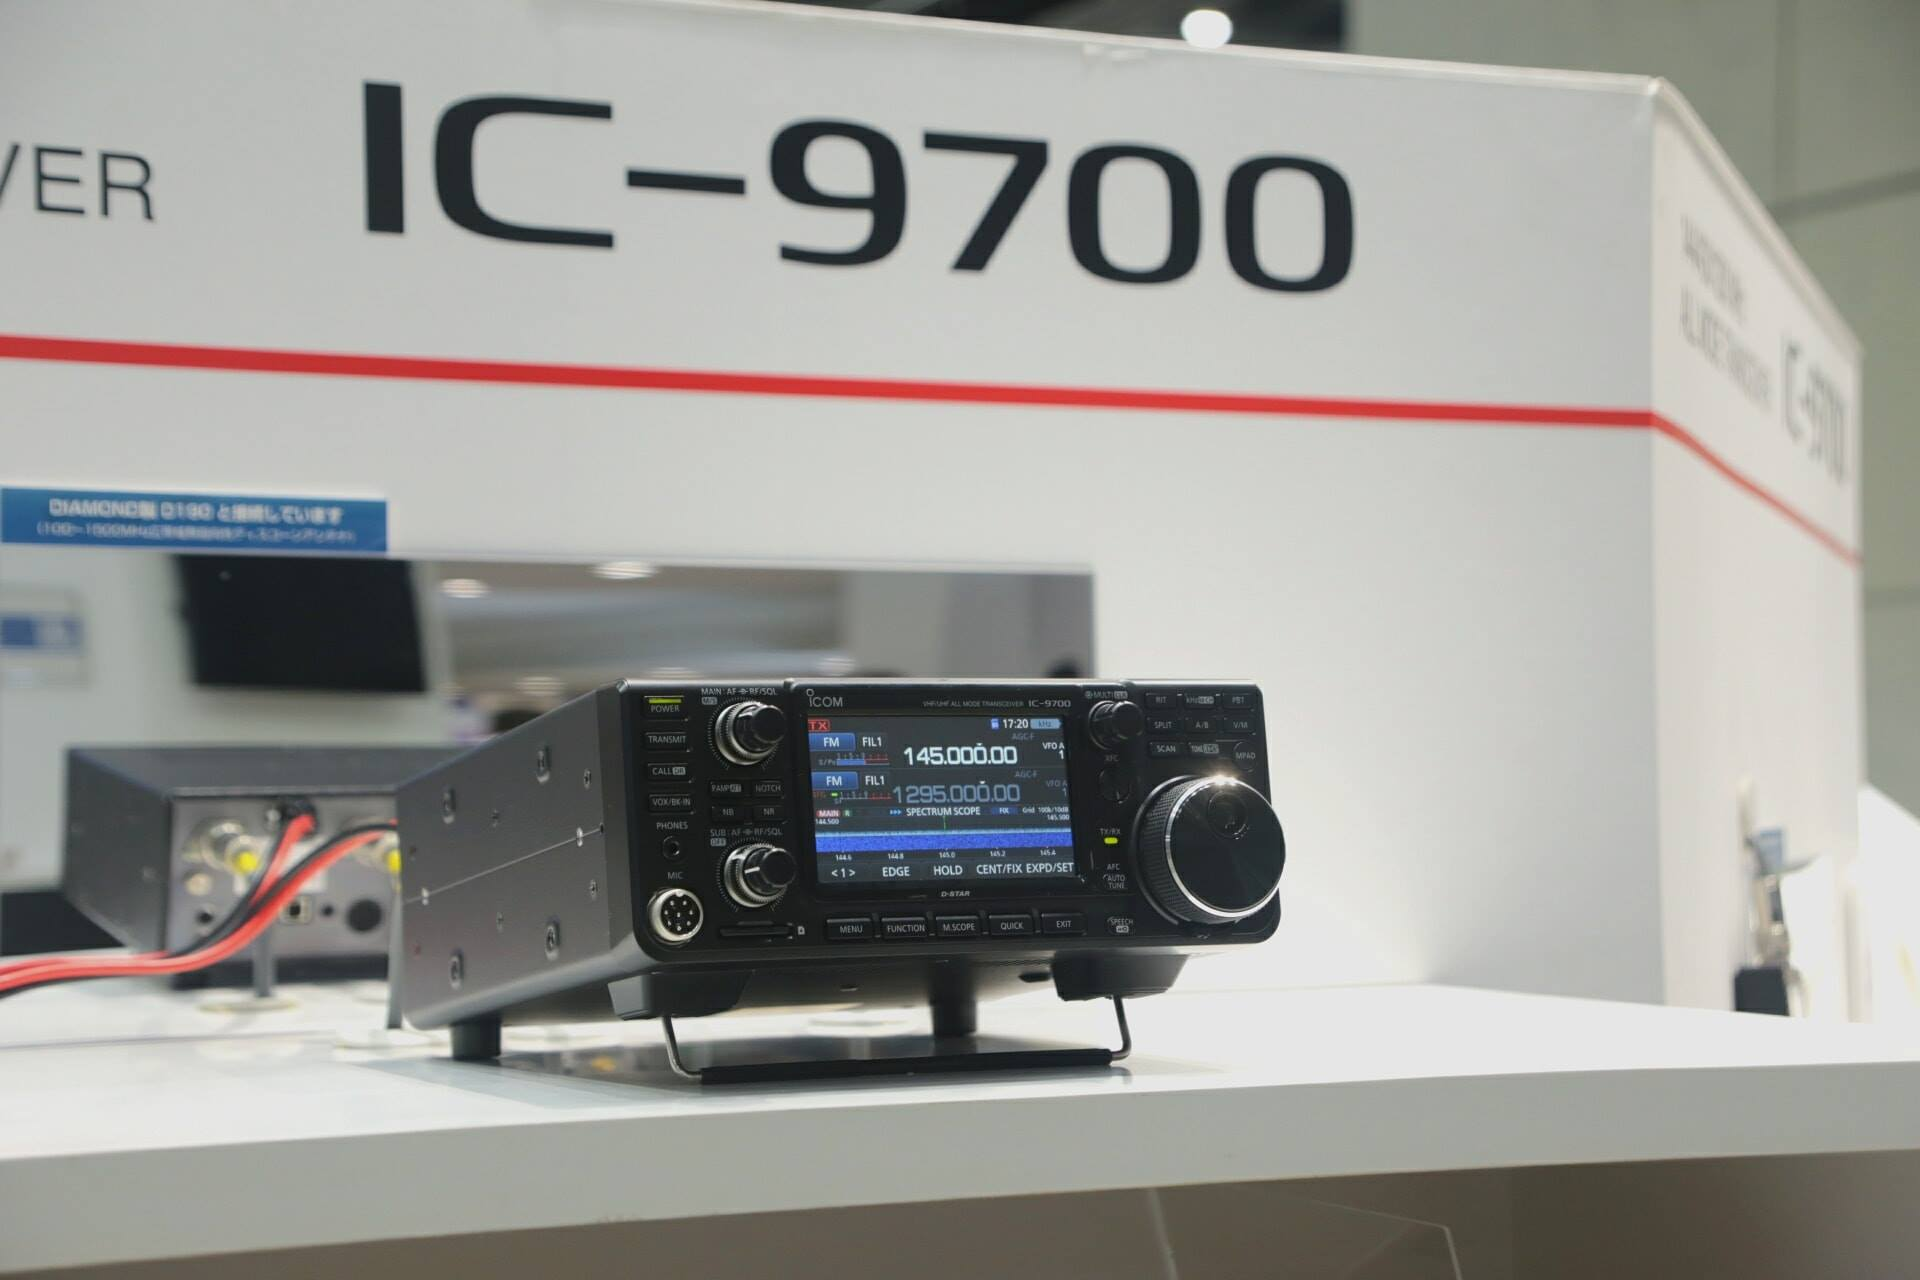 New Icom Amateur Products Including the IC-9700 to be Shown at Tokyo Hamfair 2018